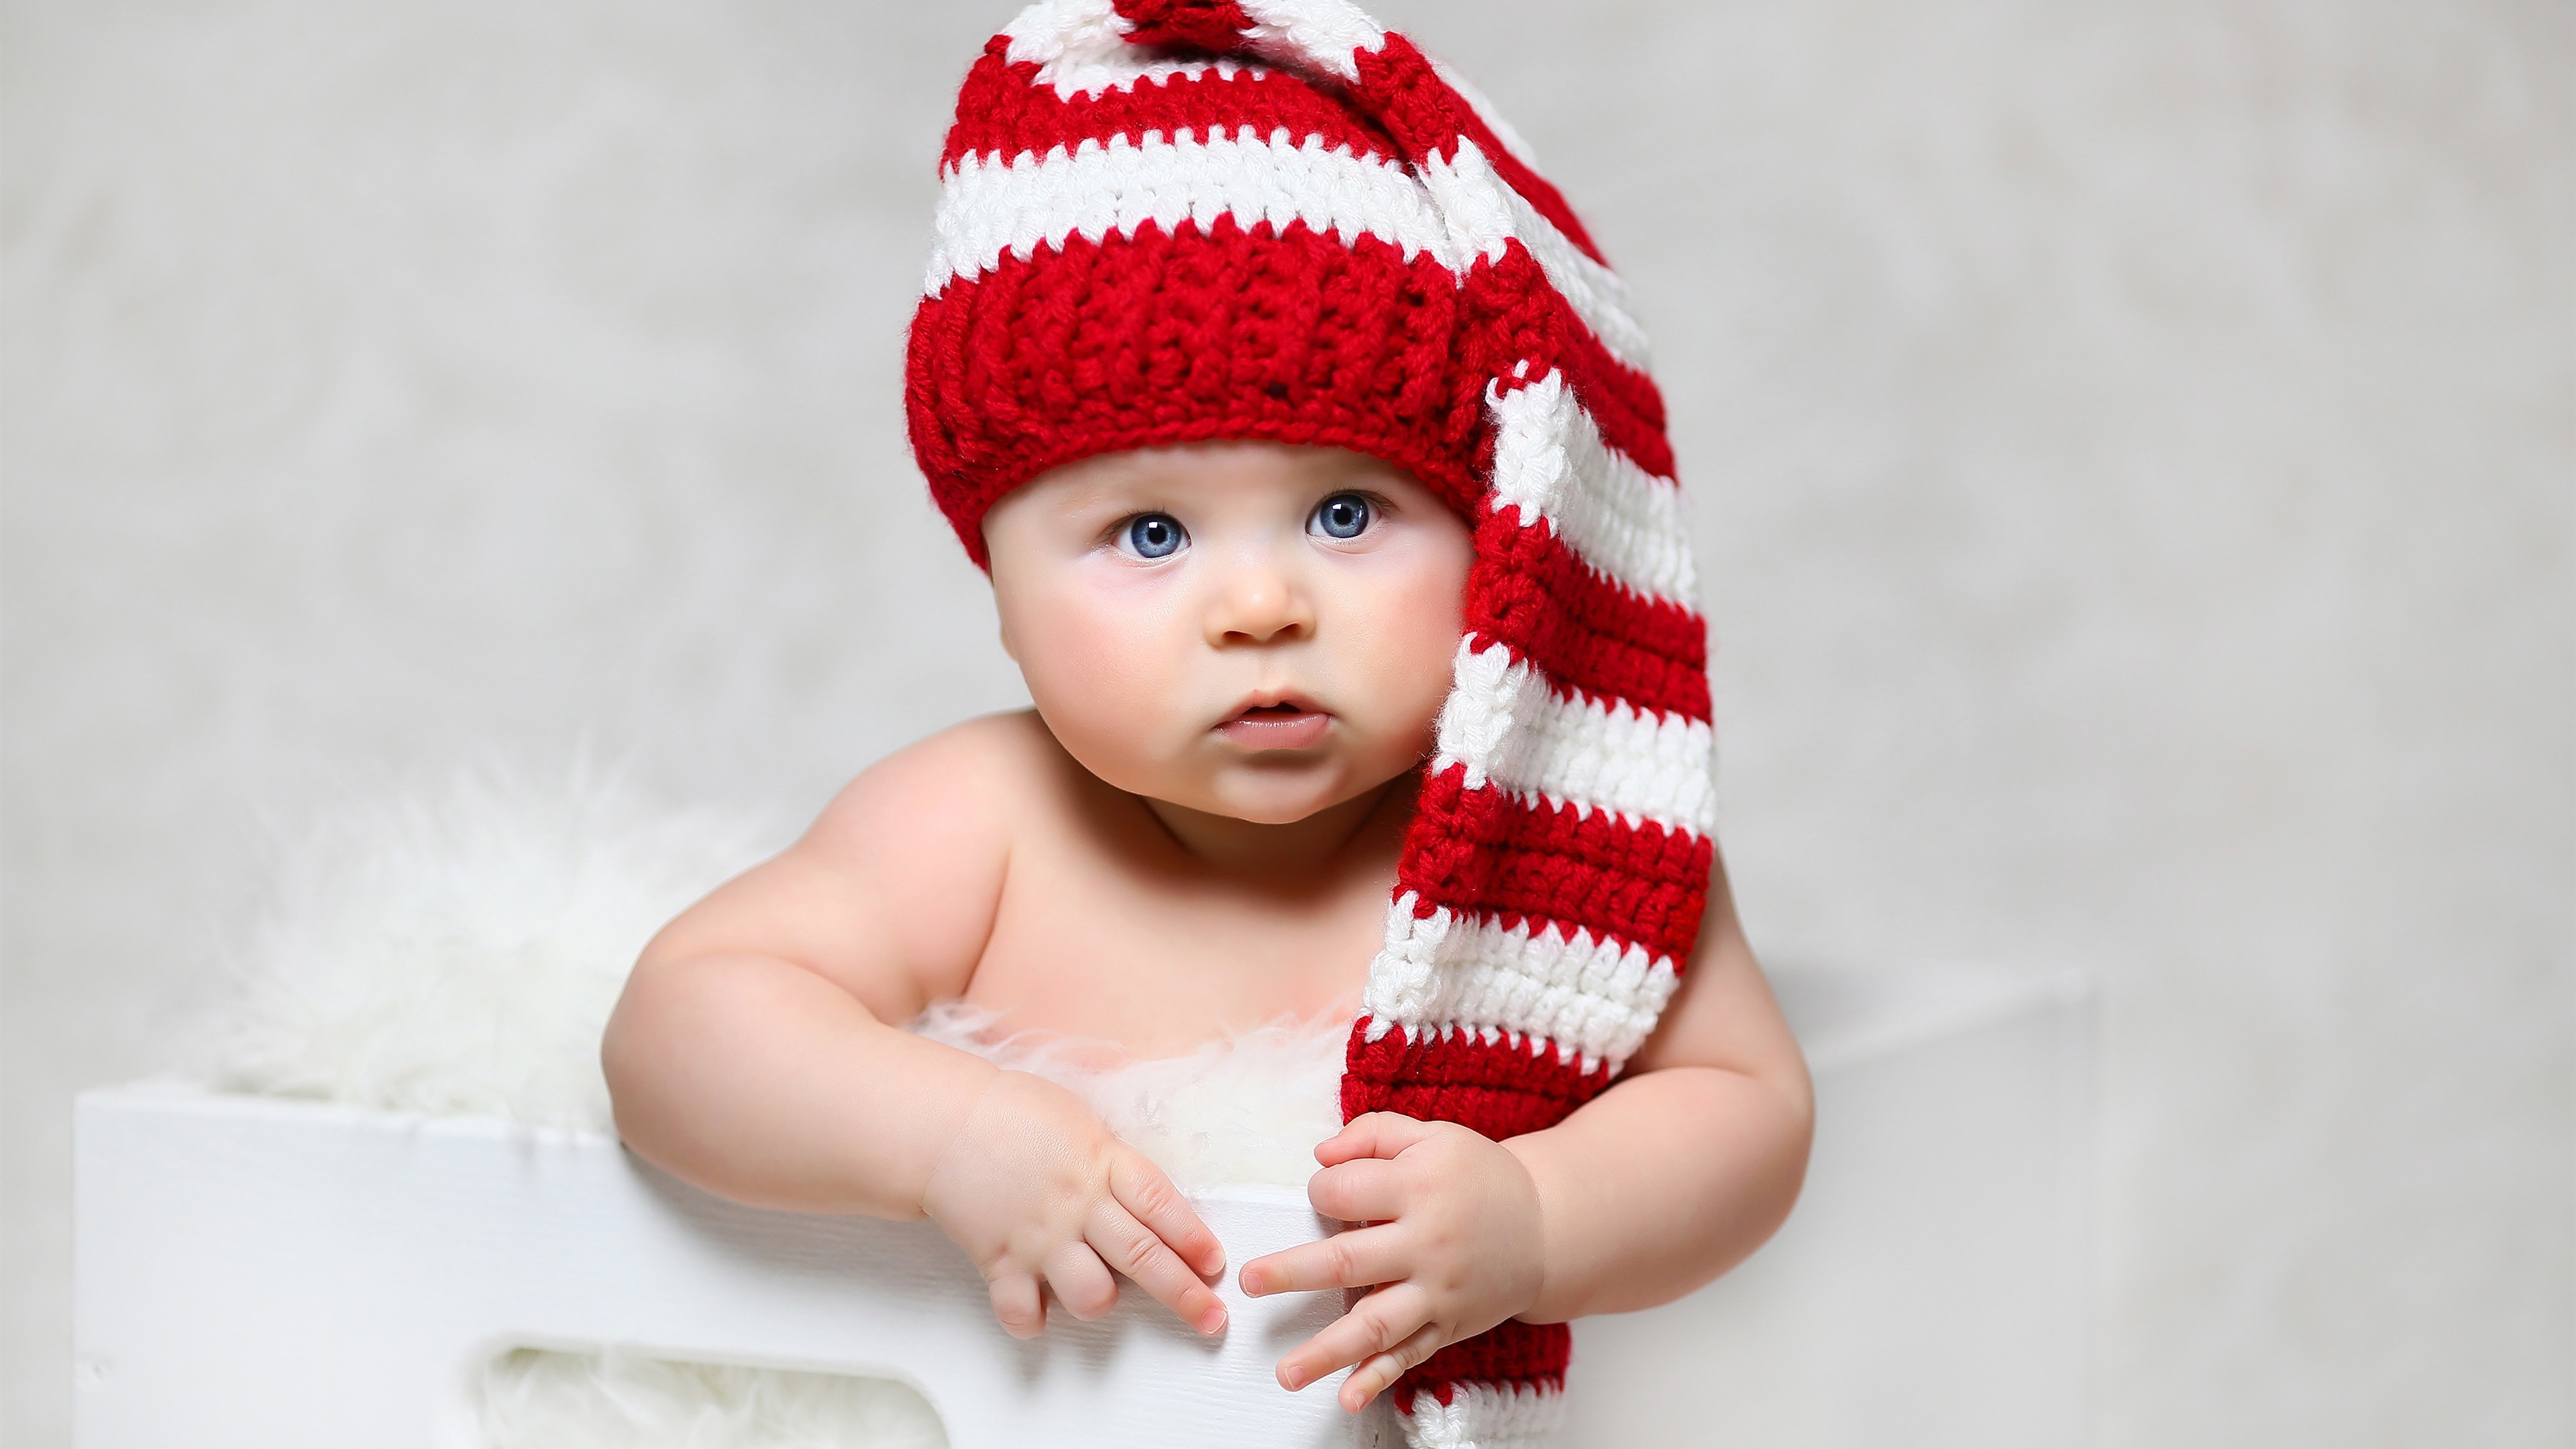 Cute Baby With Hat Wallpapers: Wallpaper Cute Baby, Blue Eyes, Hat 3840x2160 UHD 4K